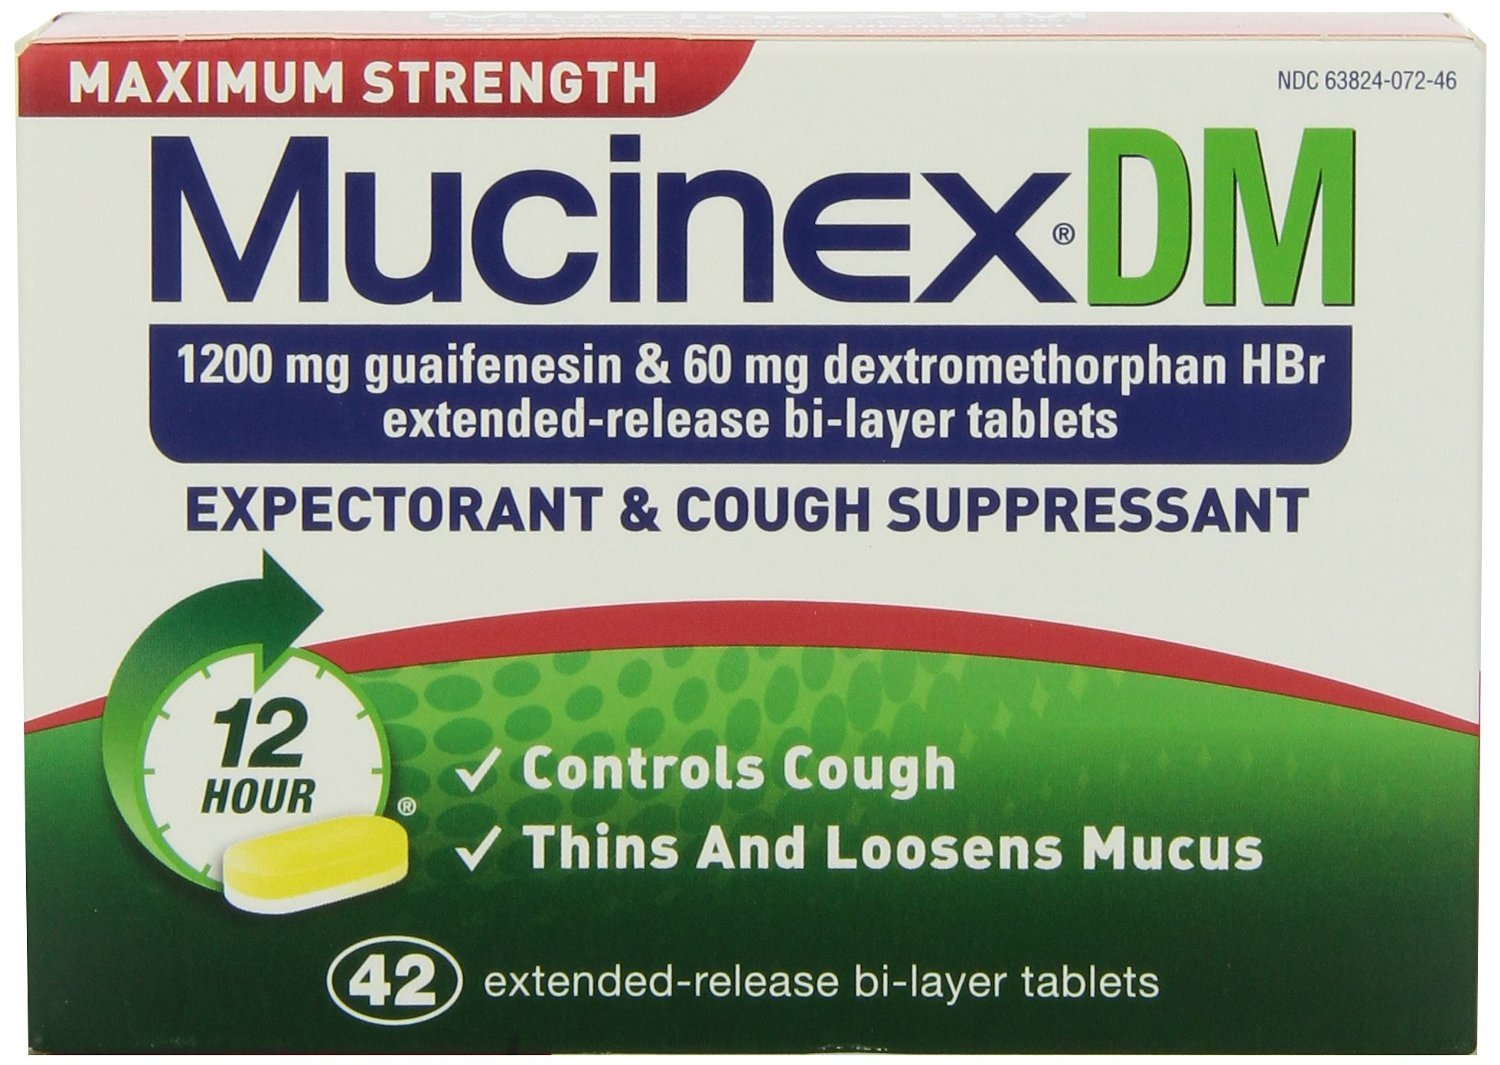 Mucinex DM Maximum Strength 12-Hour Expectorant and Cough Supressant Tablets, 84 Count Pack